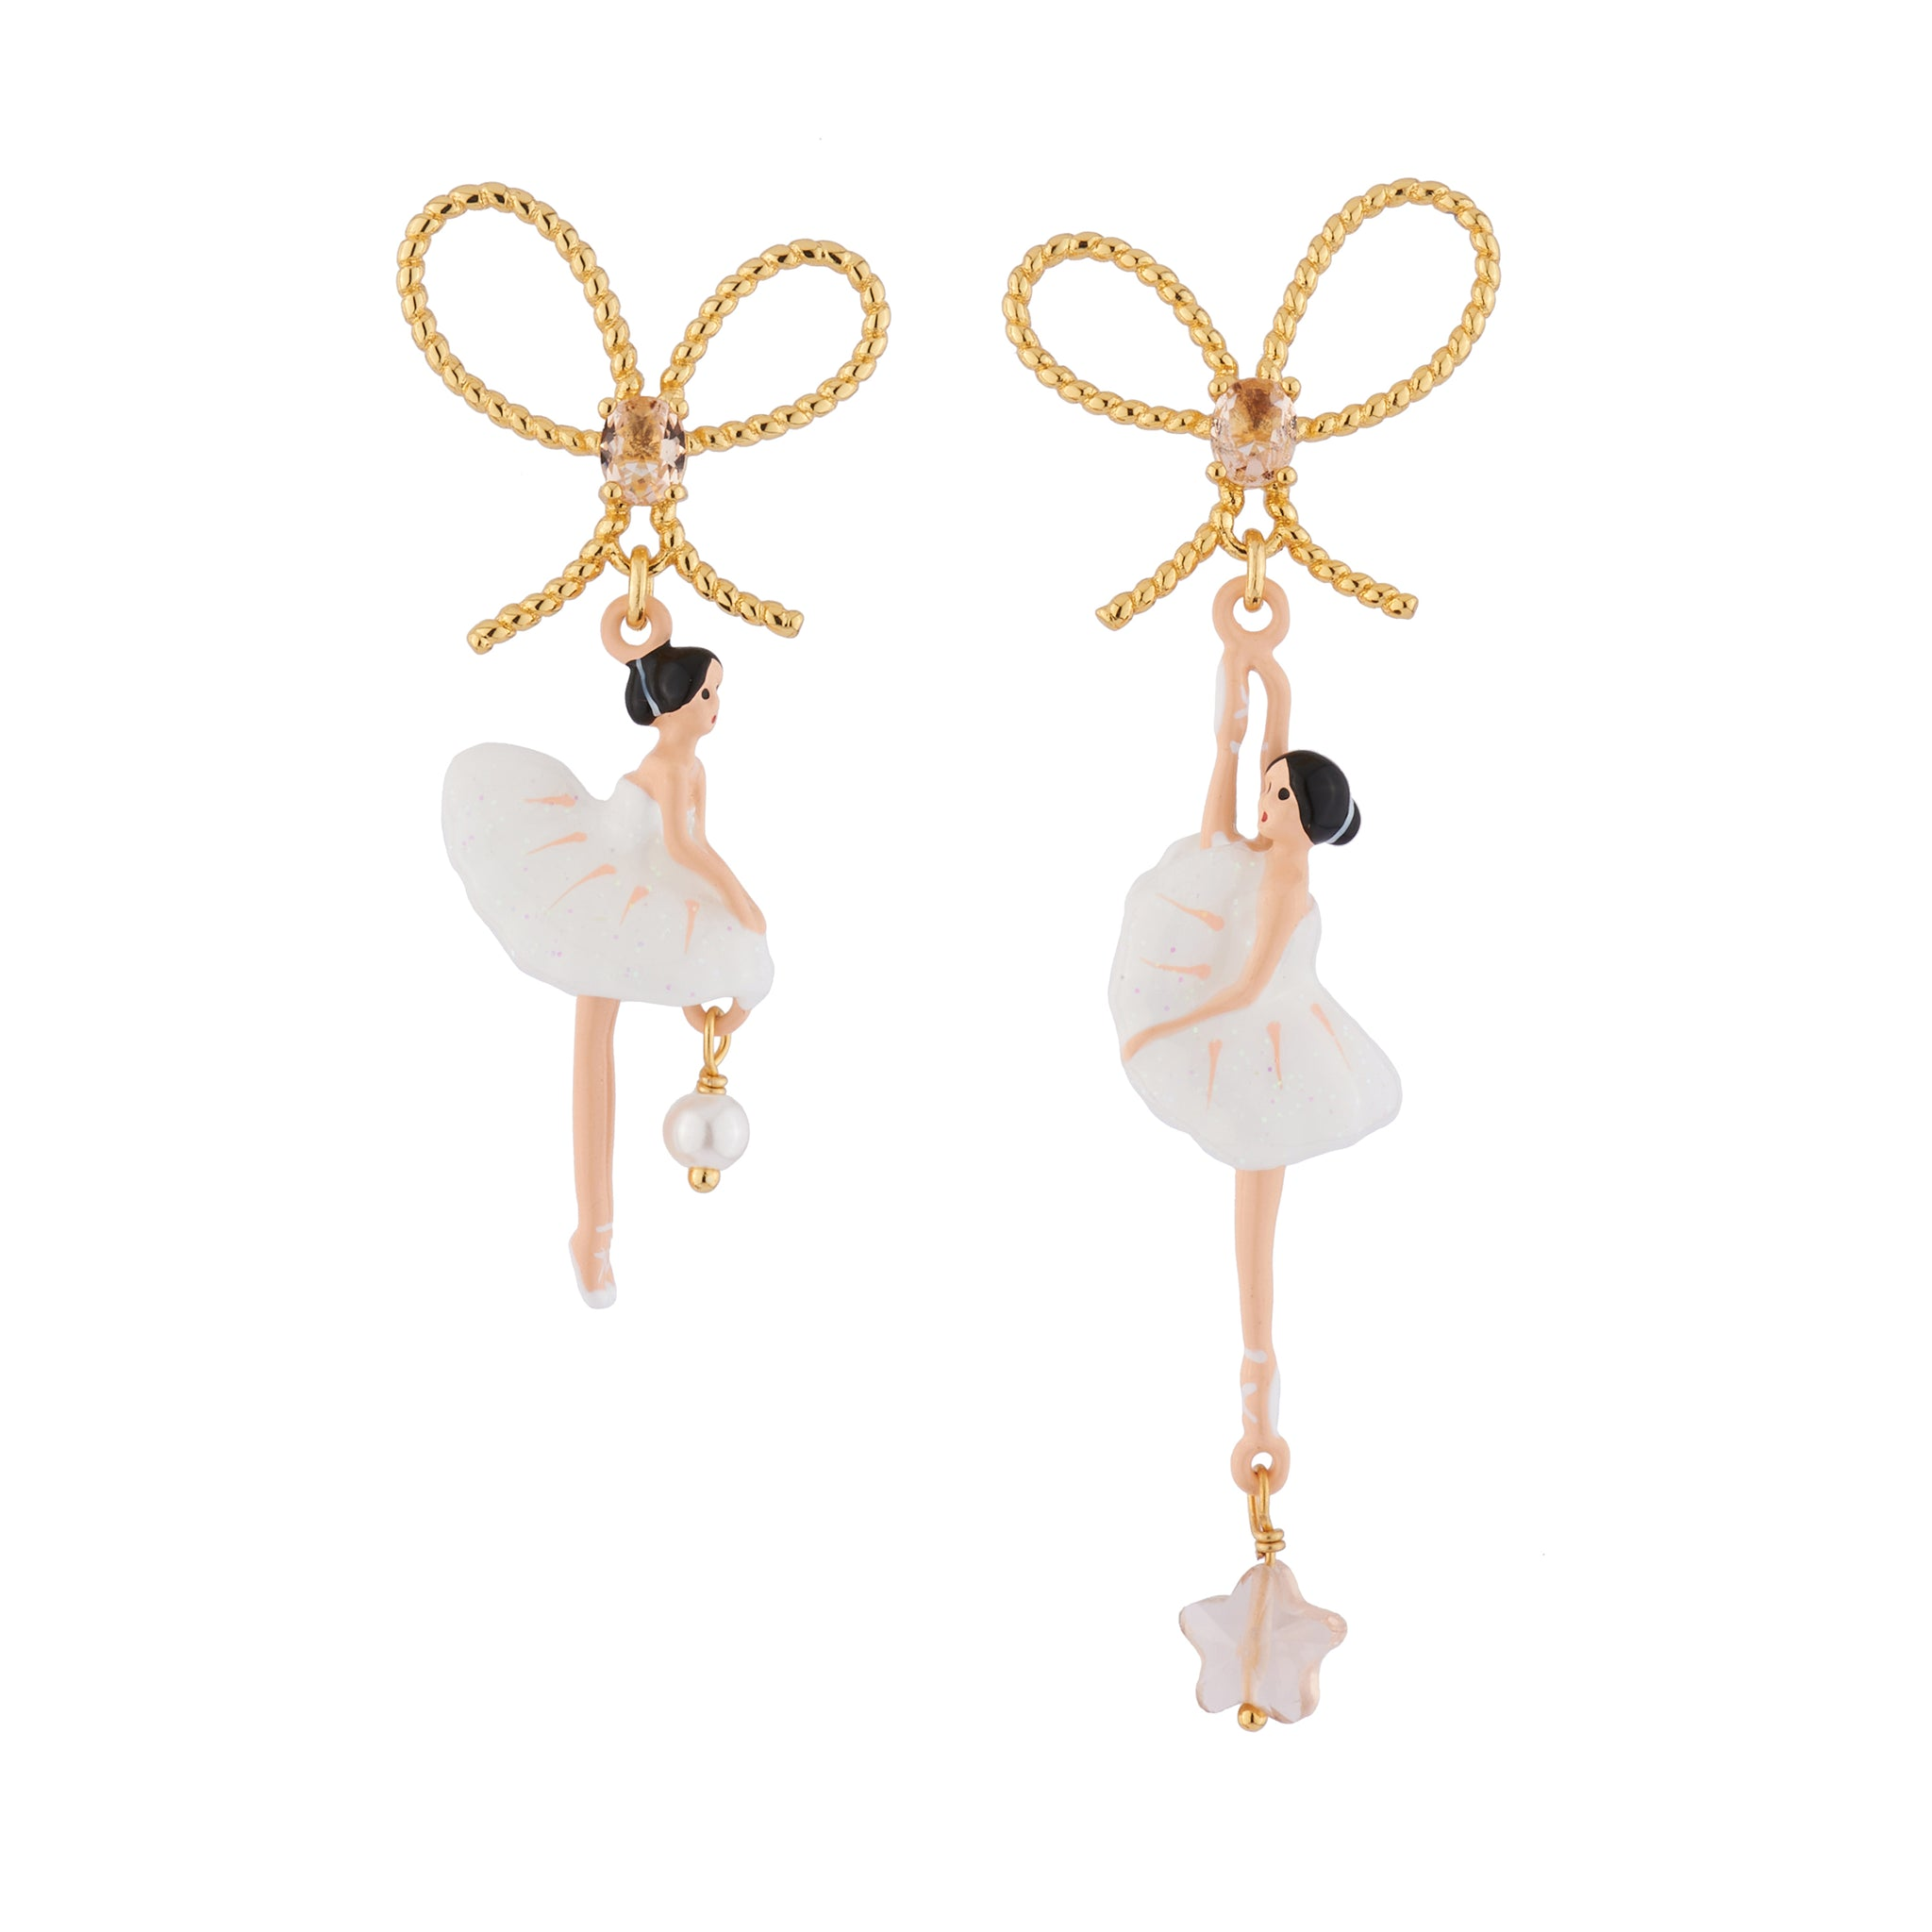 White Asymmetrical Earrings with Star Ballerina